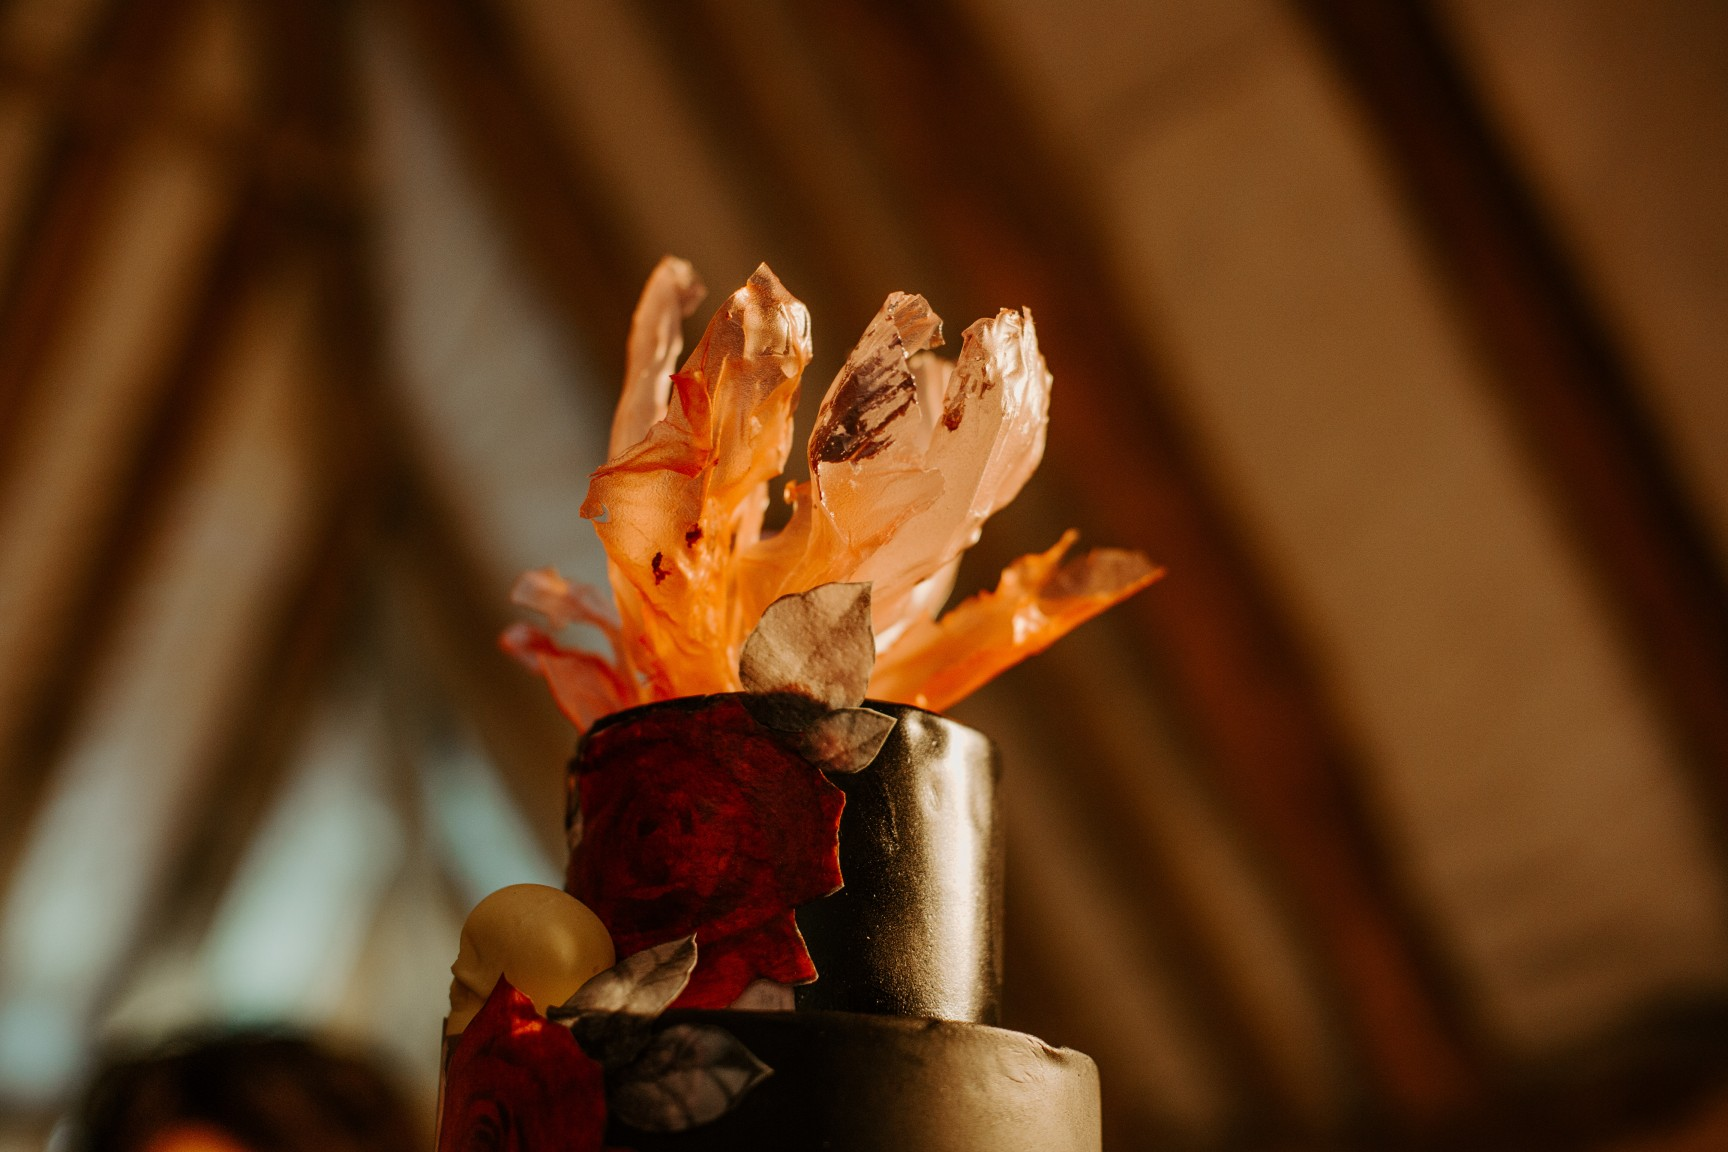 rock and roll wedding - red wedding cake - unique wedding cake - unique wedding cake topper - alternative wedding cake - edgy wedding cake